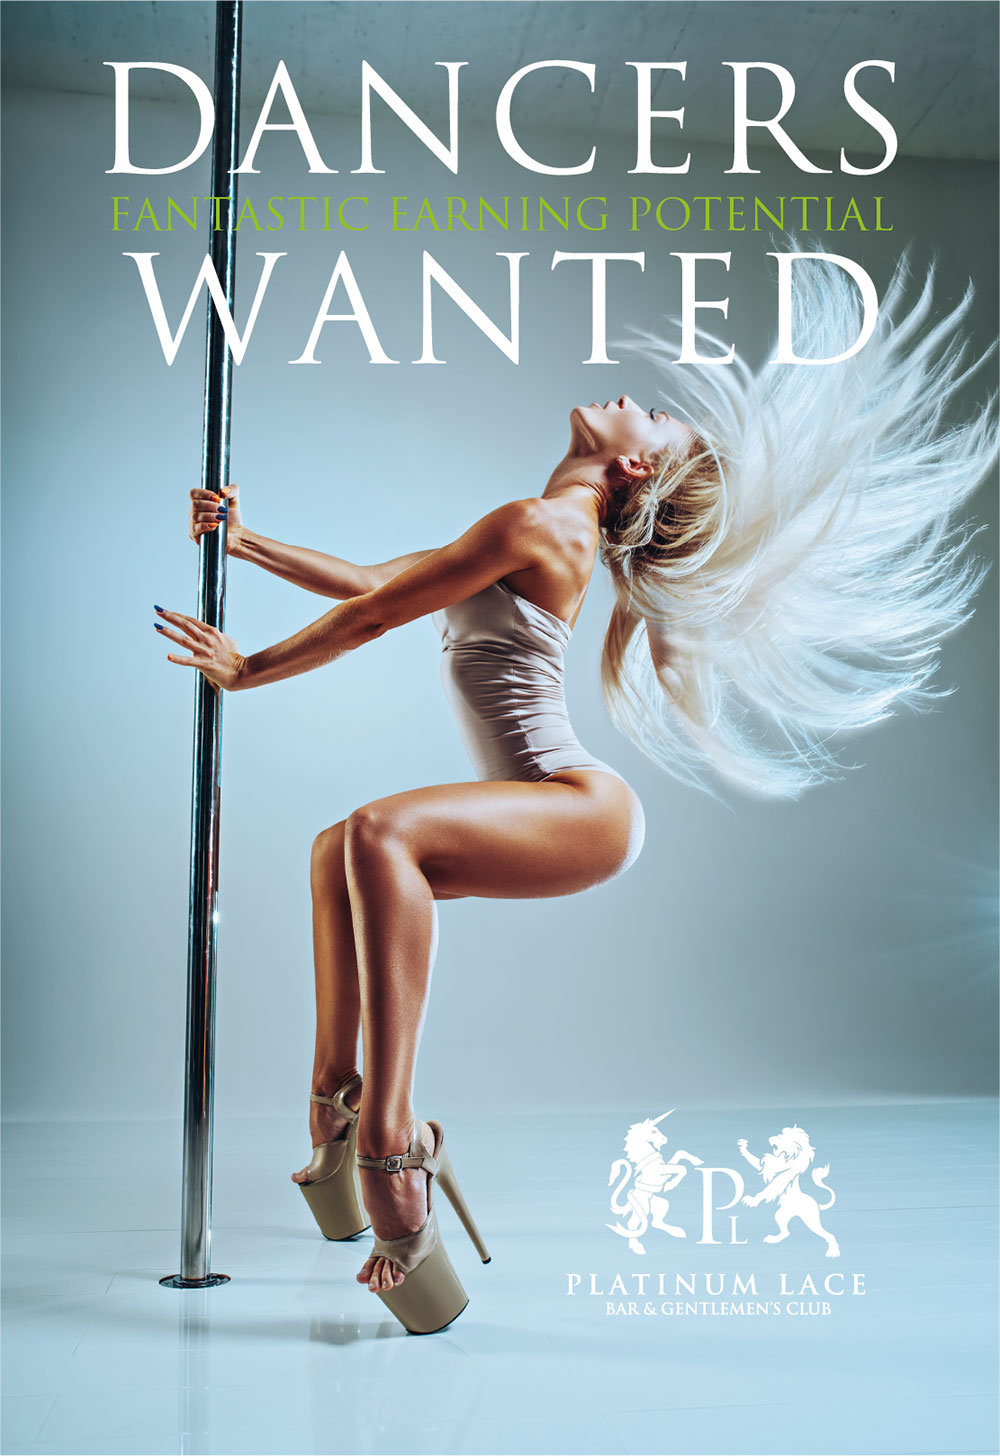 dancers wanted in glasgow